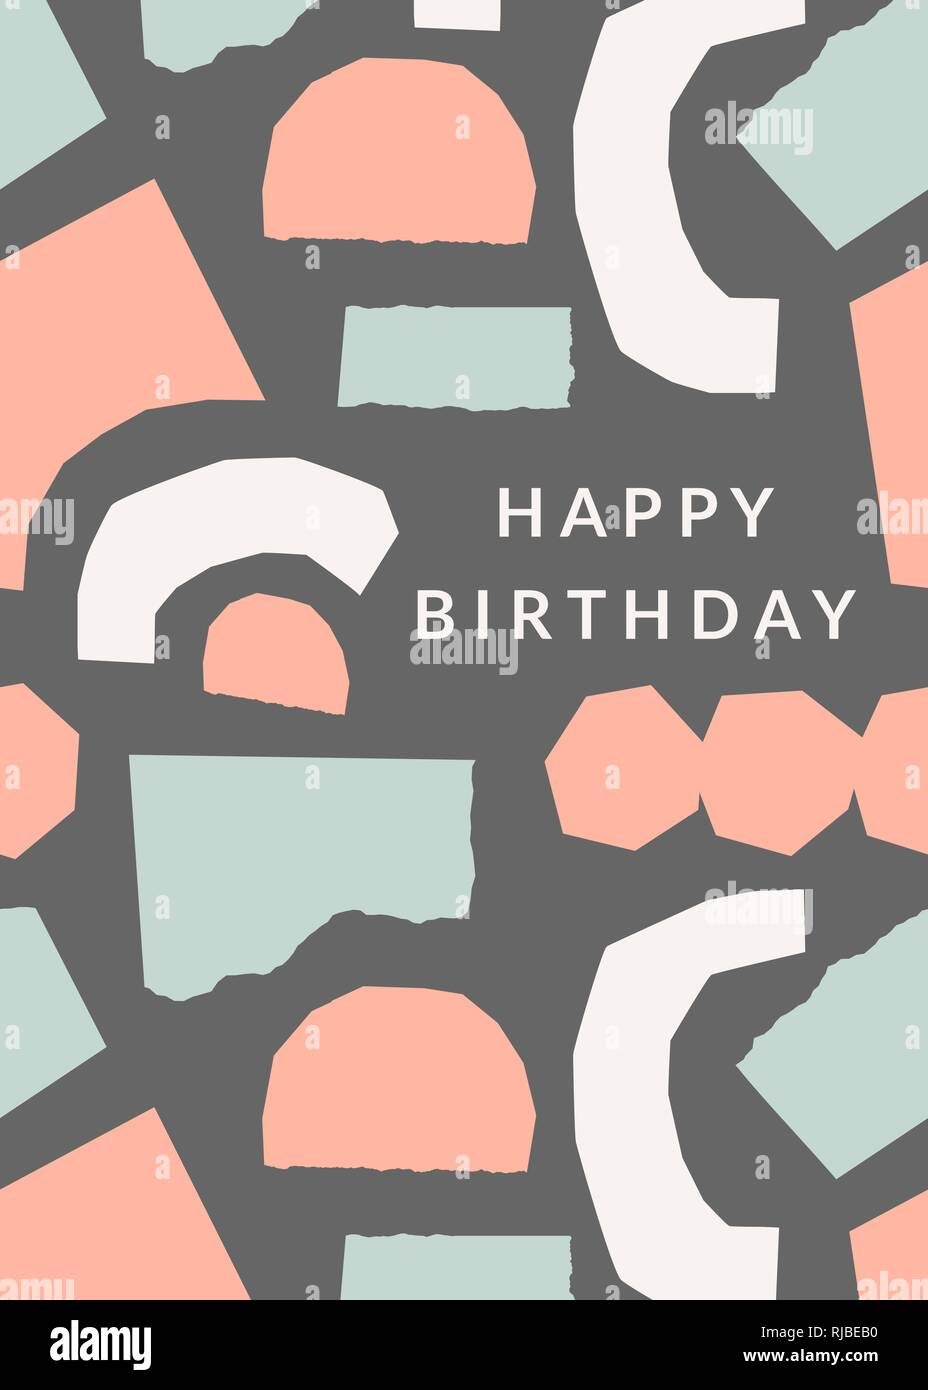 Greeting card template with torn paper pieces in pastel colors and With Birthday Card Collage Template